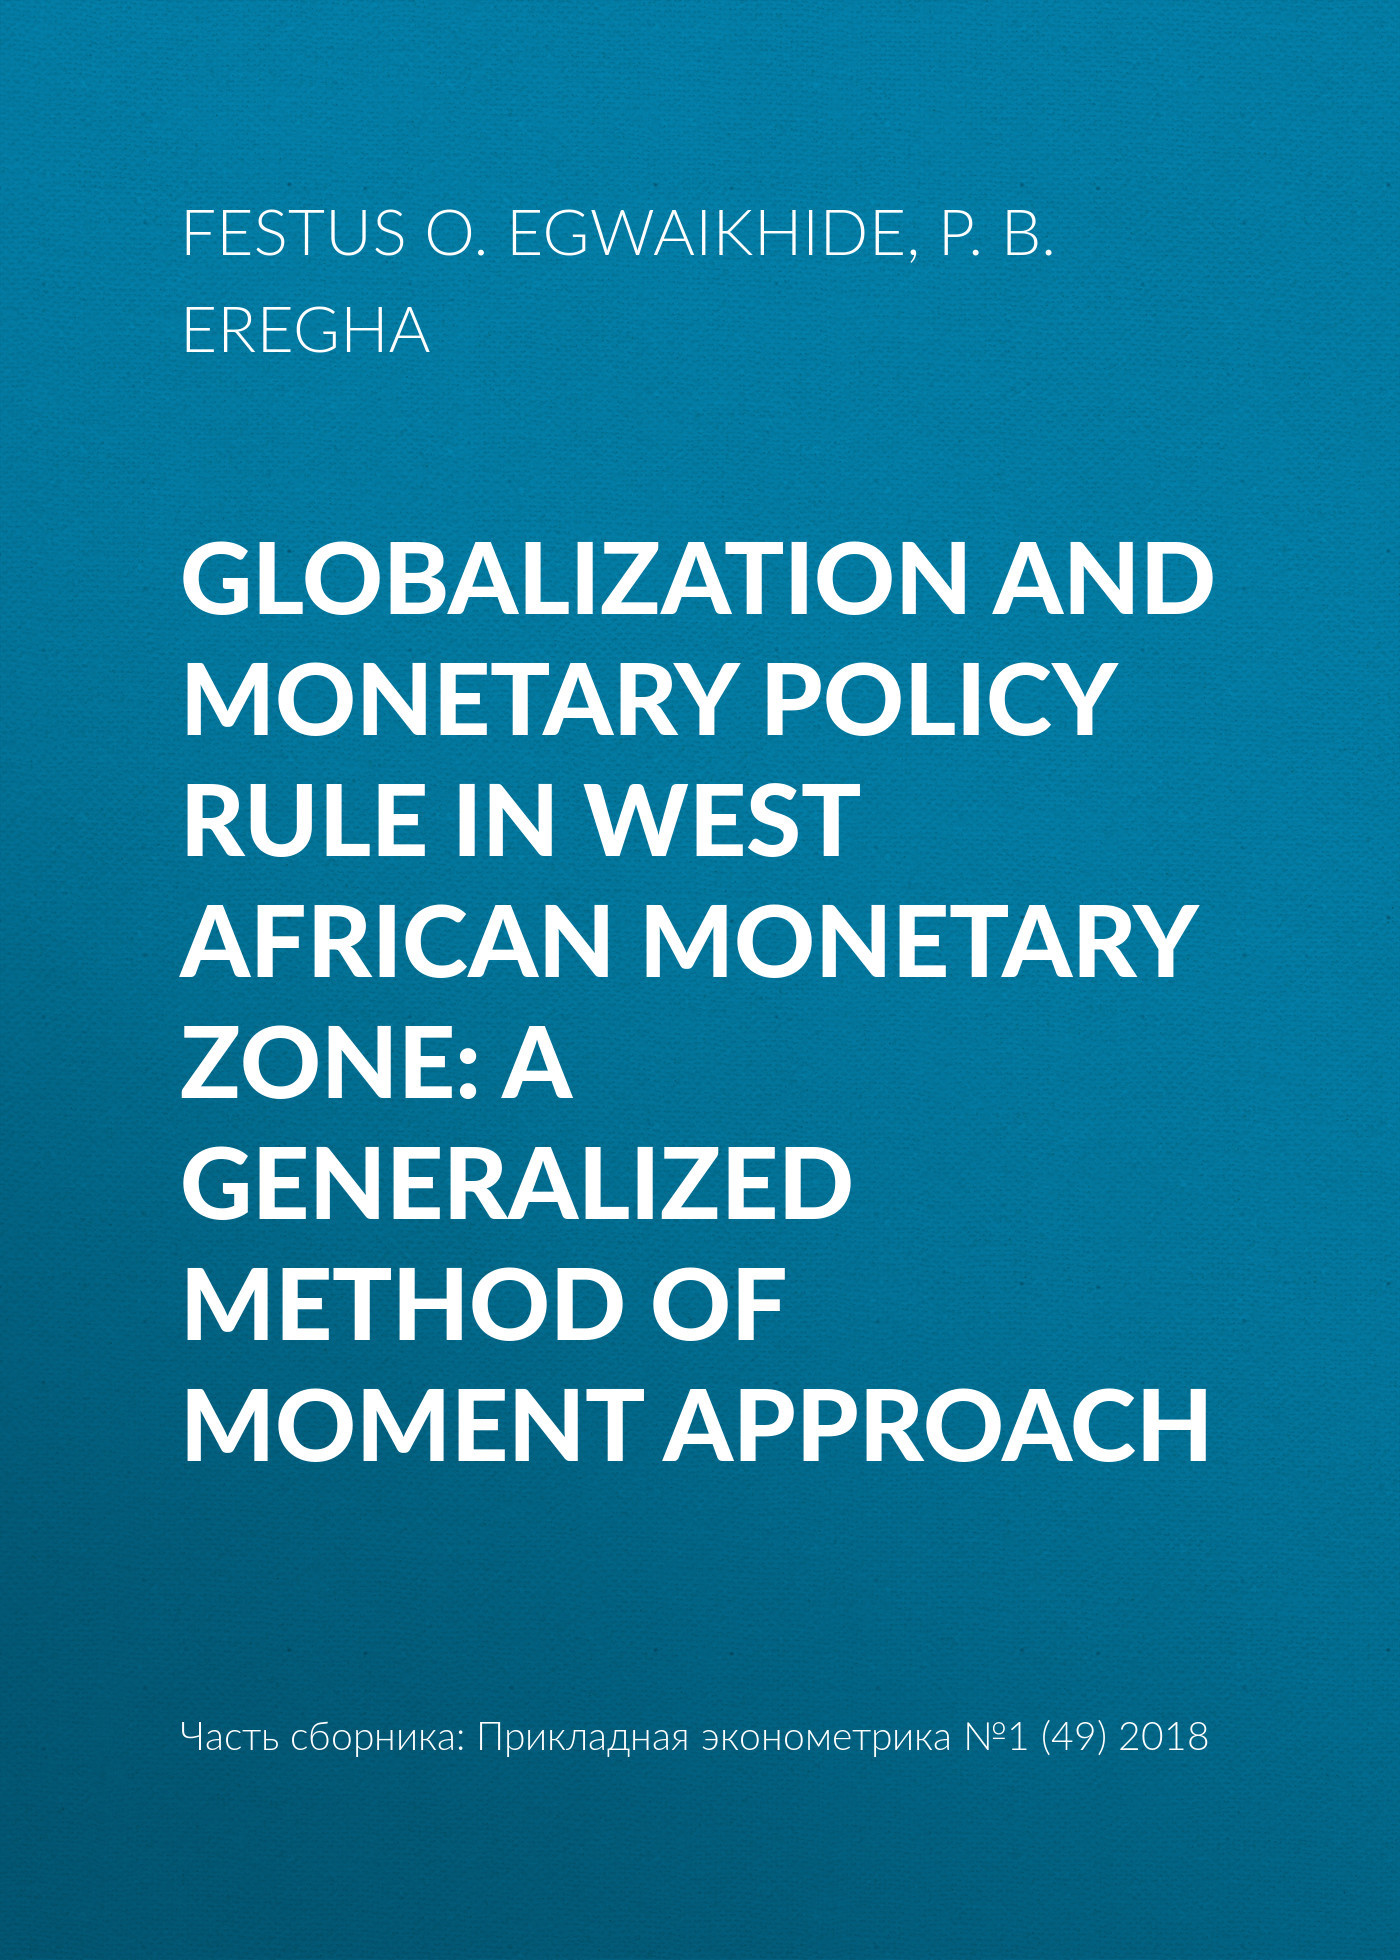 Globalization and monetary policy rule in West African Monetary Zone: A generalized method of moment approach